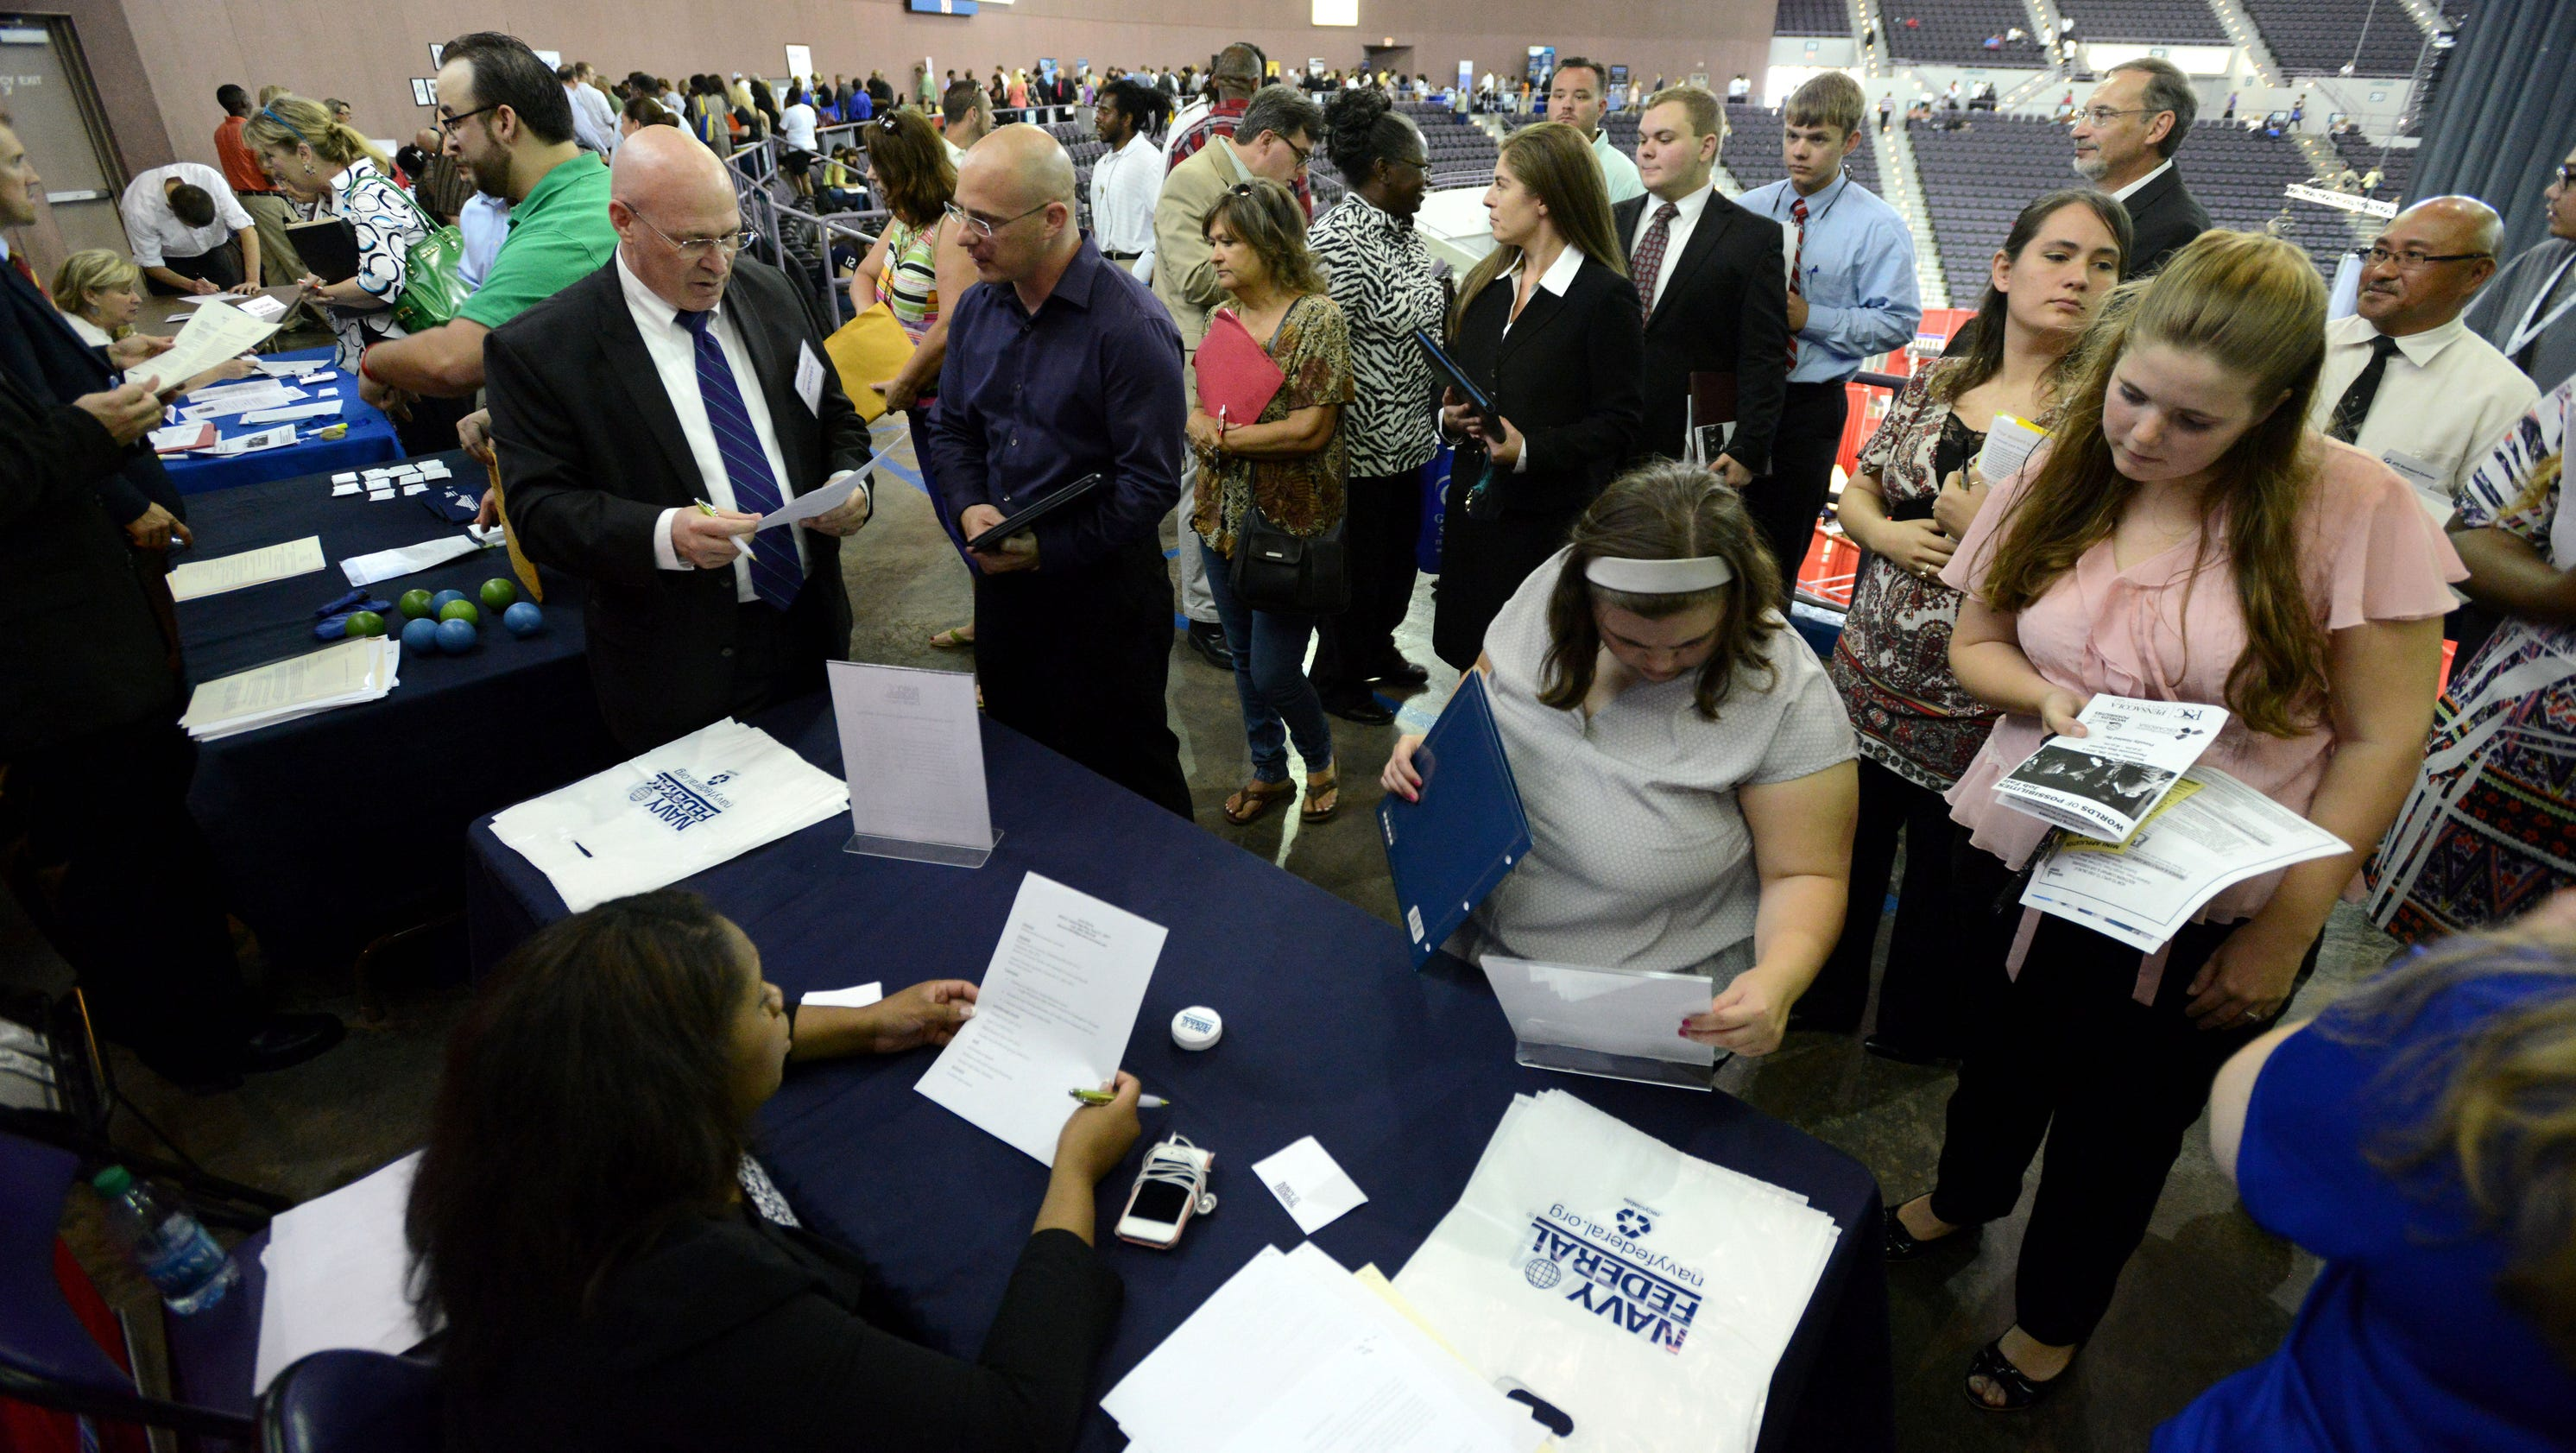 job fair encourages hiring veterans